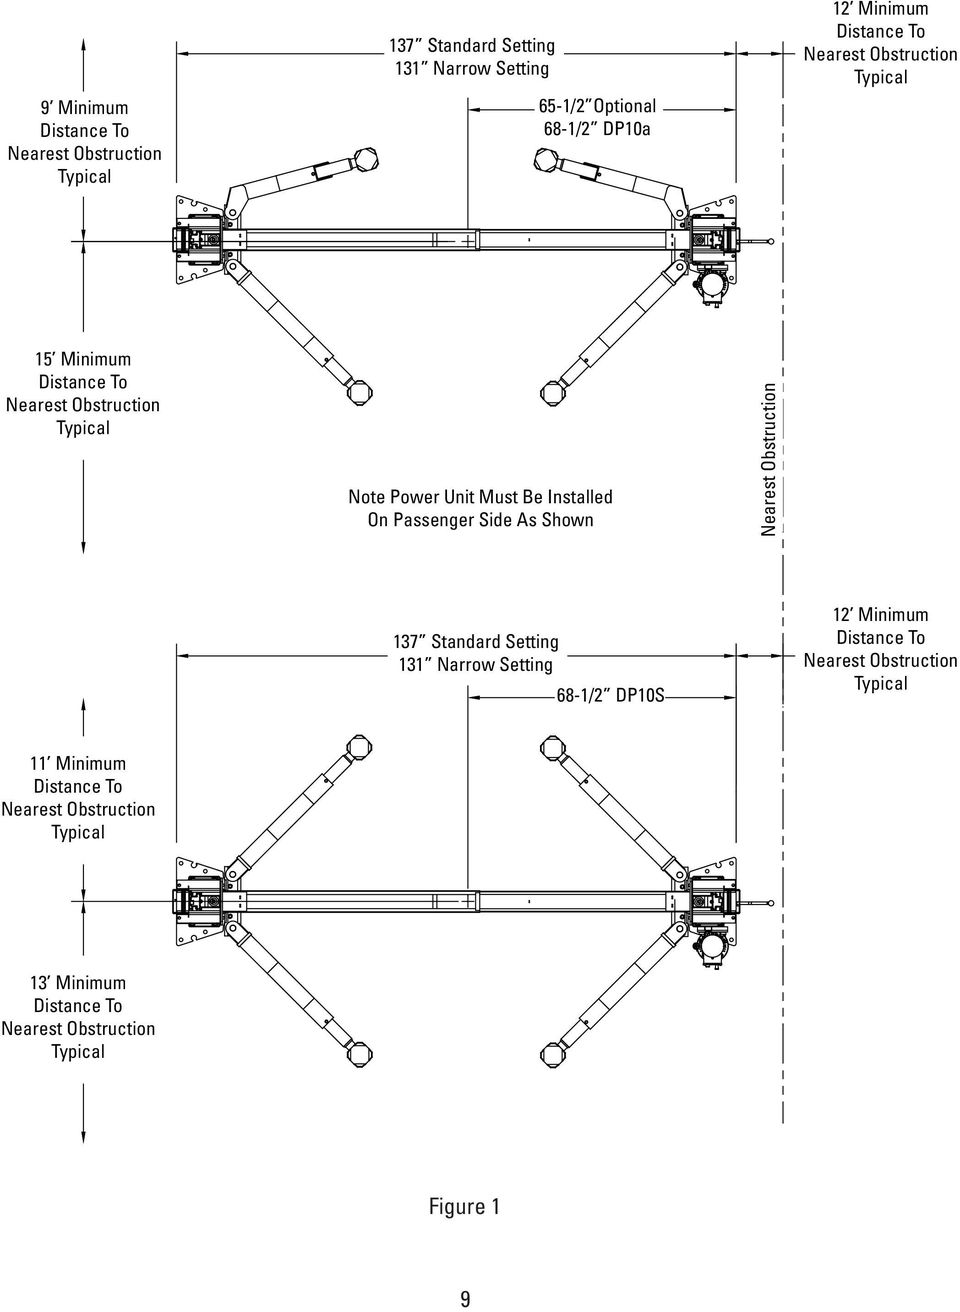 Two Post Lift Installation And Owners Manual Pdf 9000 Lb Eagle Wiring Diagram Passenger Side As Shown Nearest Obstruction 137 Standard Setting 131 Narrow 68 1